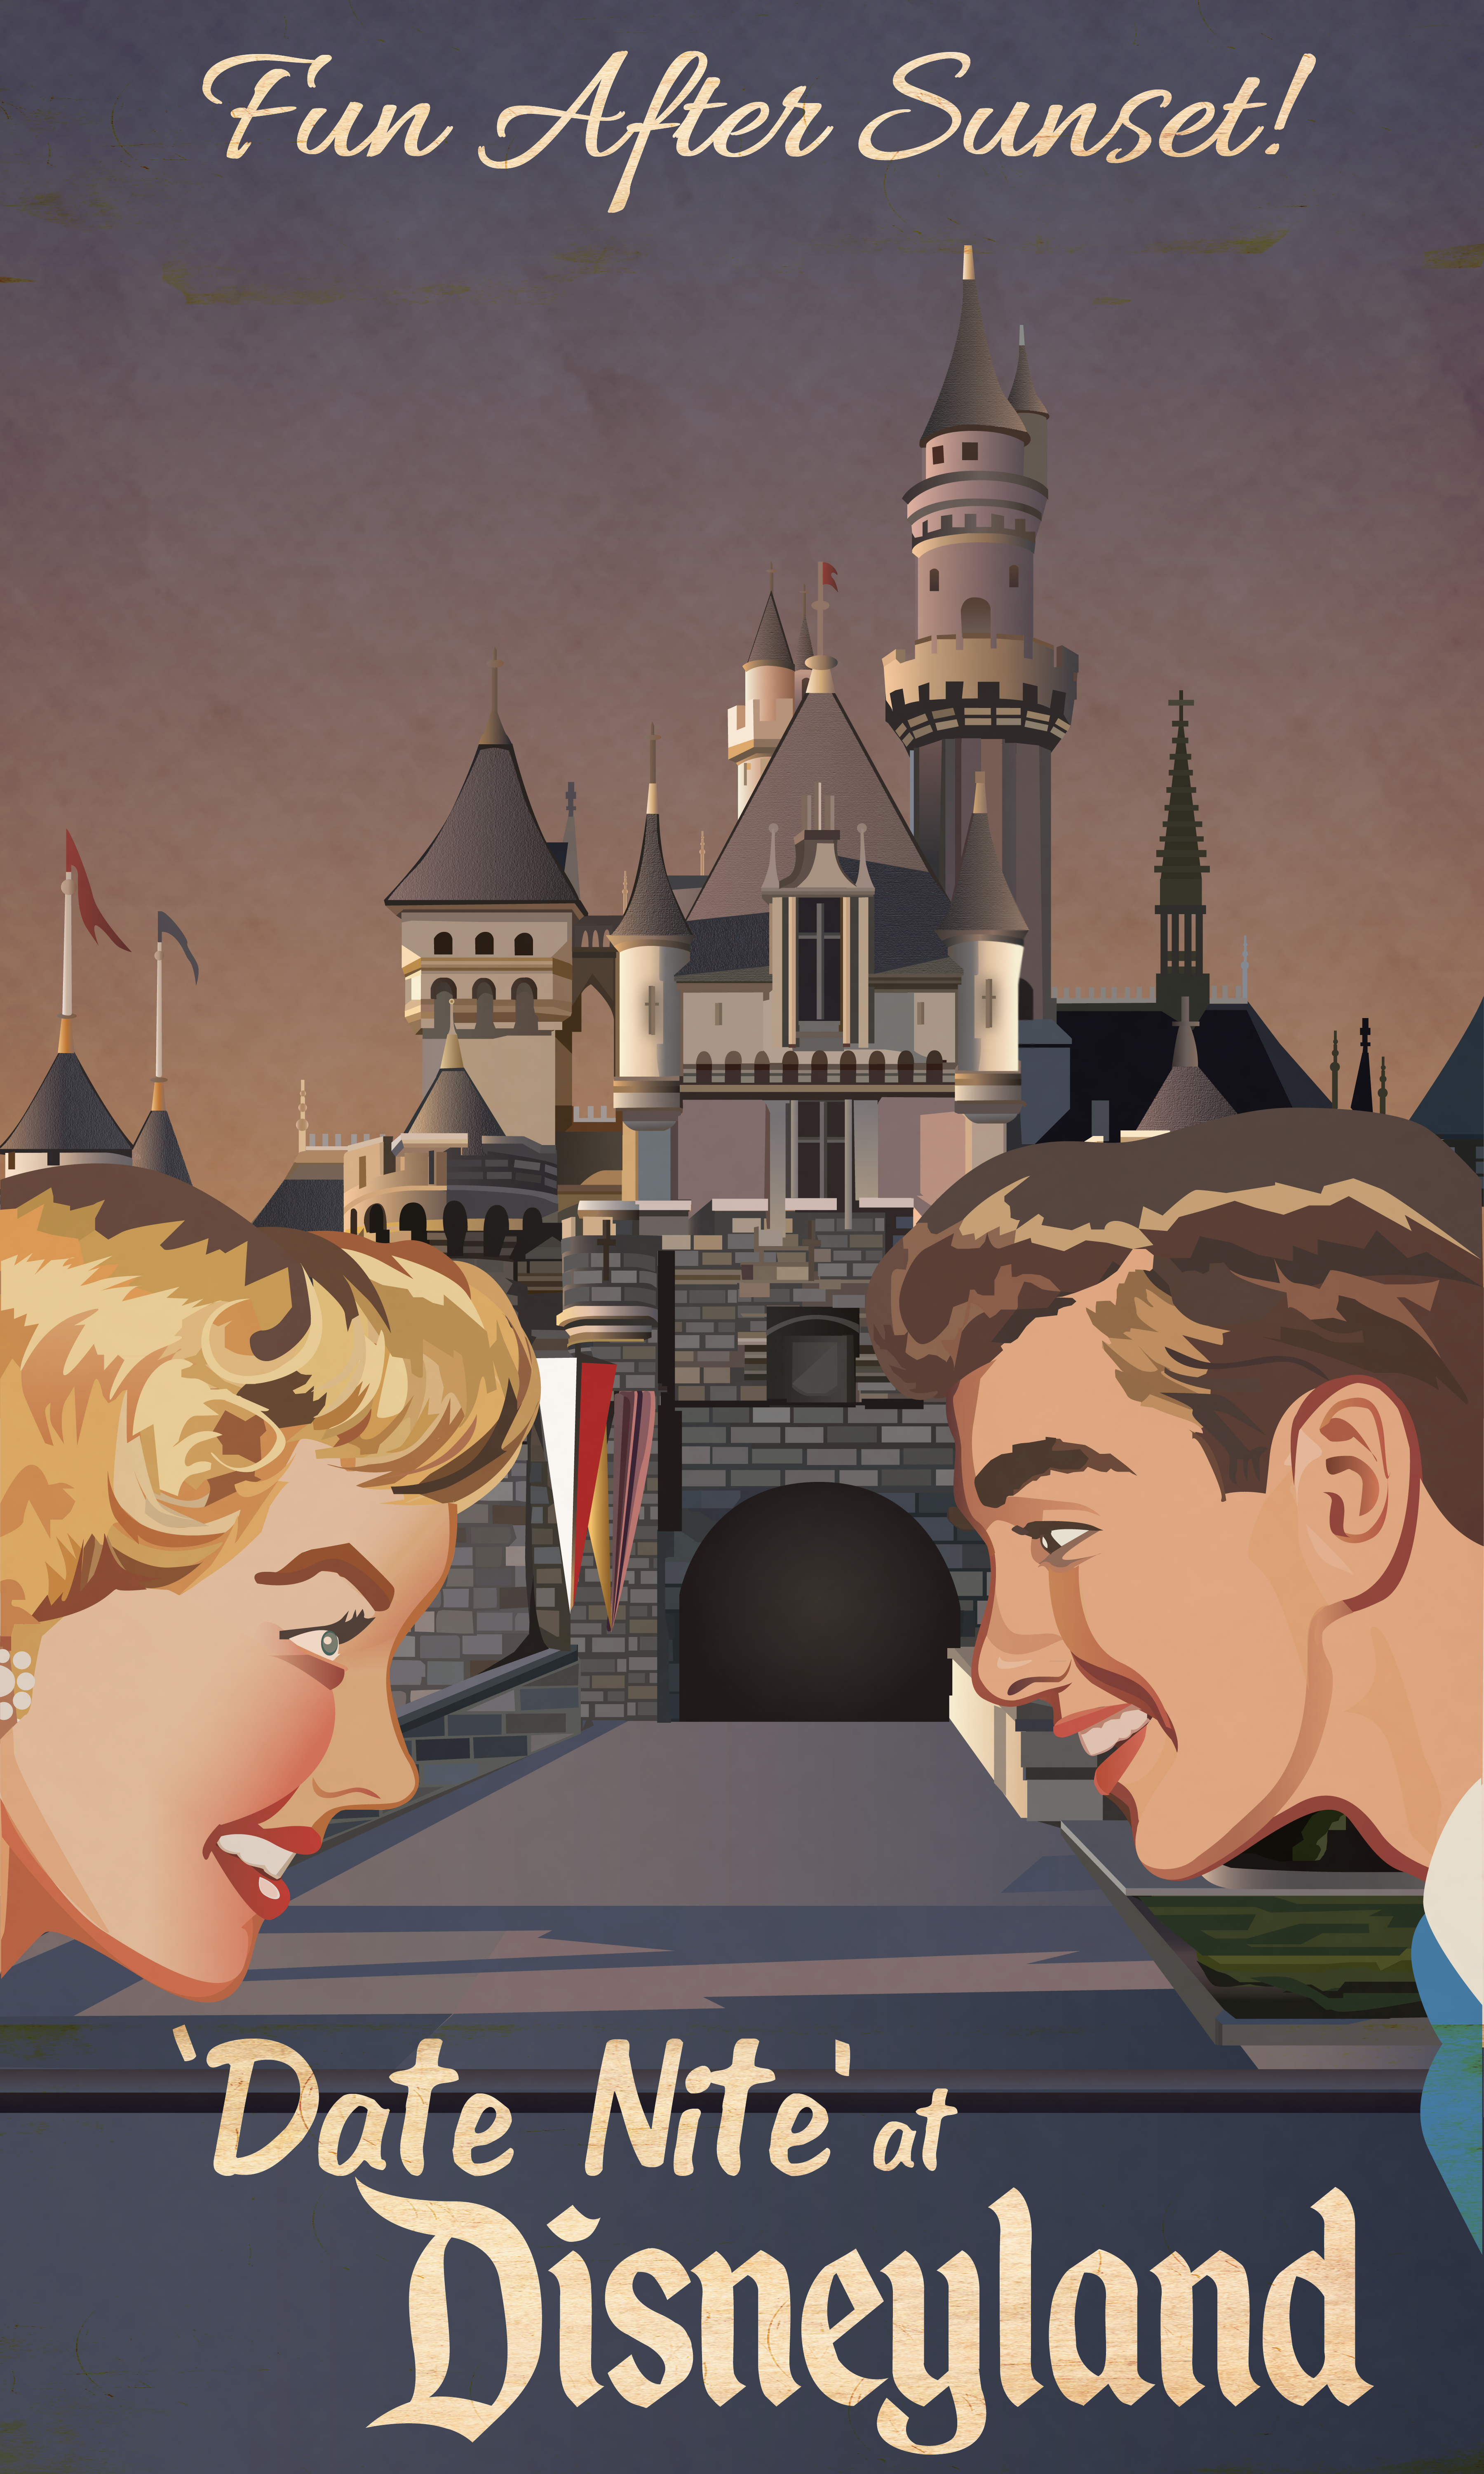 MouseMingle.com Is a New Dating Site for Single Disney Fans